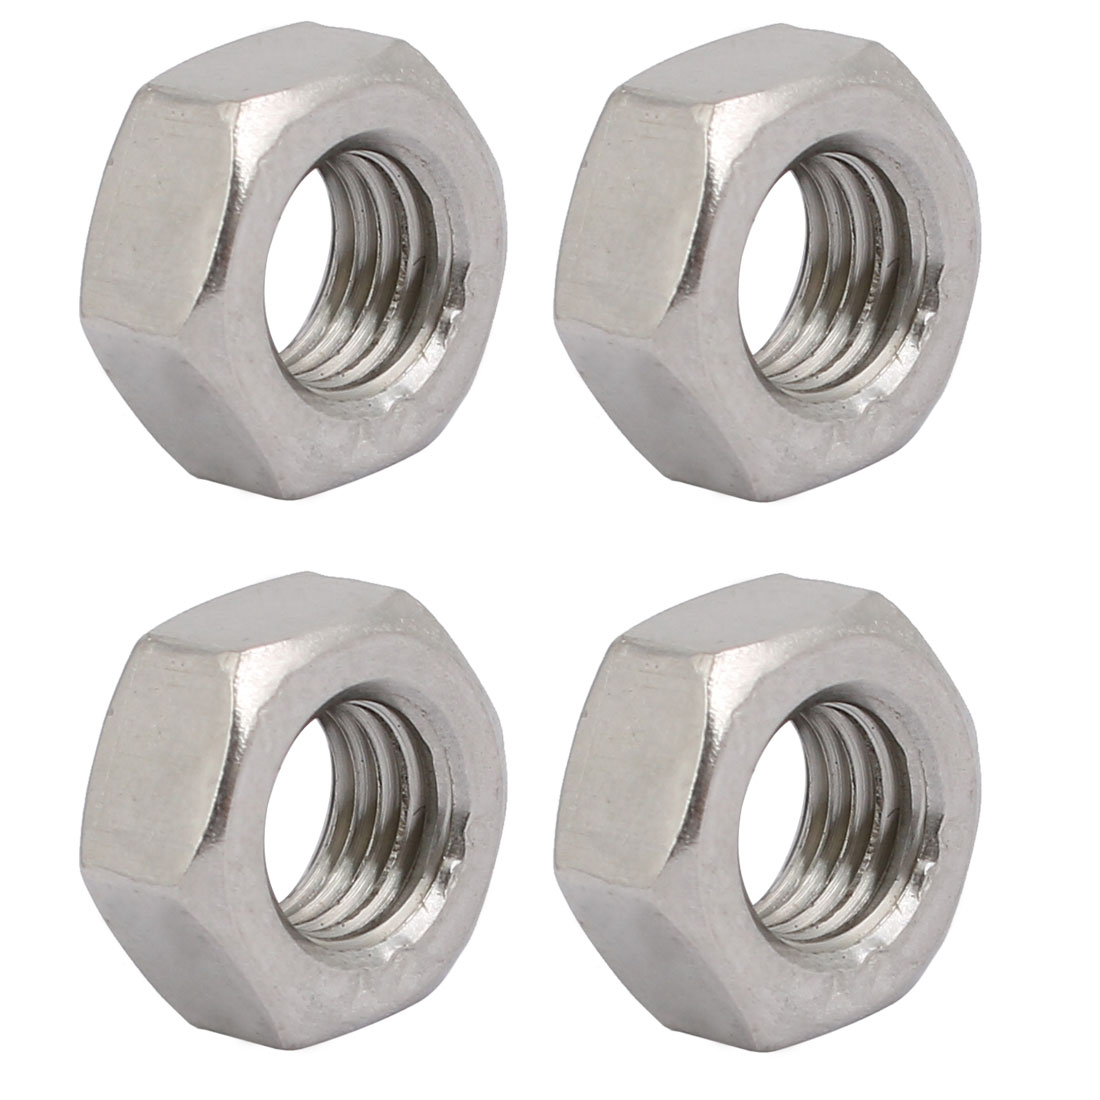 4pcs M8 x 1mm Pitch Metric Fine Thread 304 Stainless Steel Hex Nuts